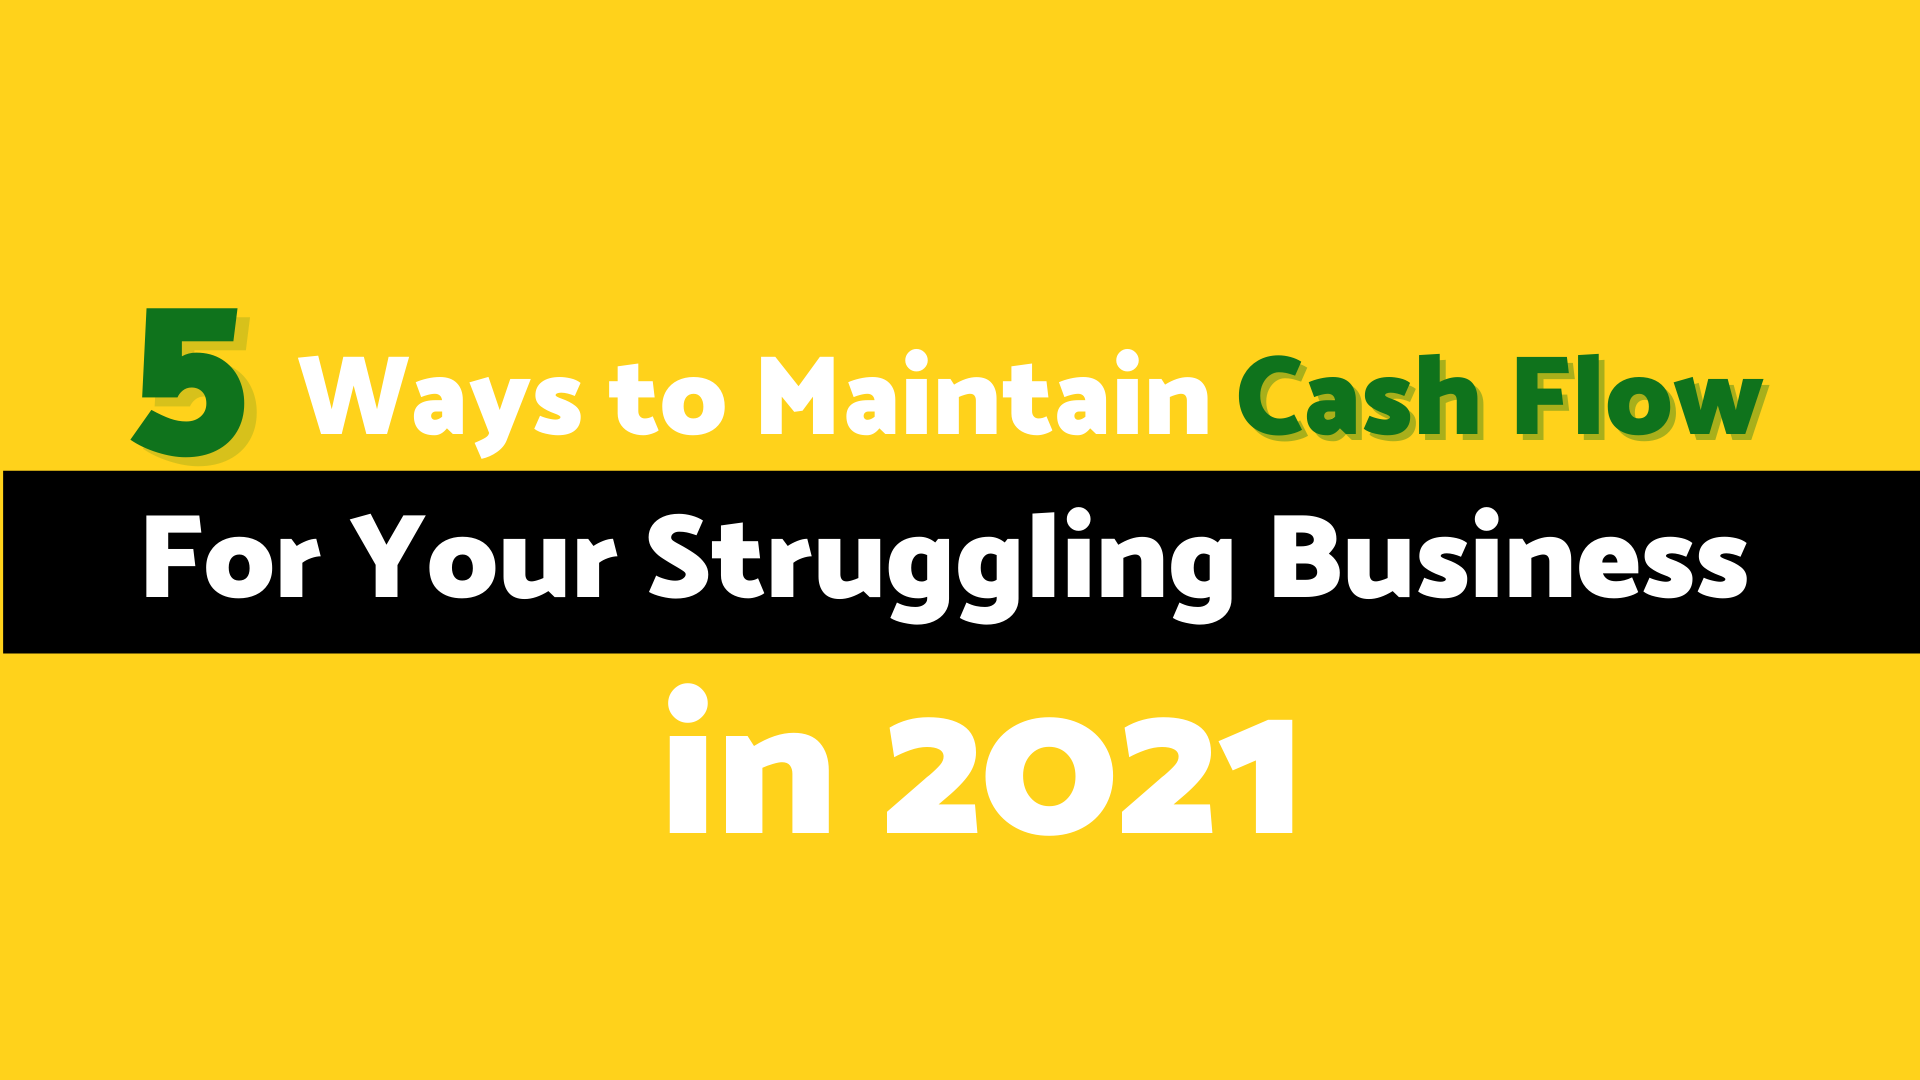 5 Ways to Maintain Cash Flow For Your Struggling Business in 2021